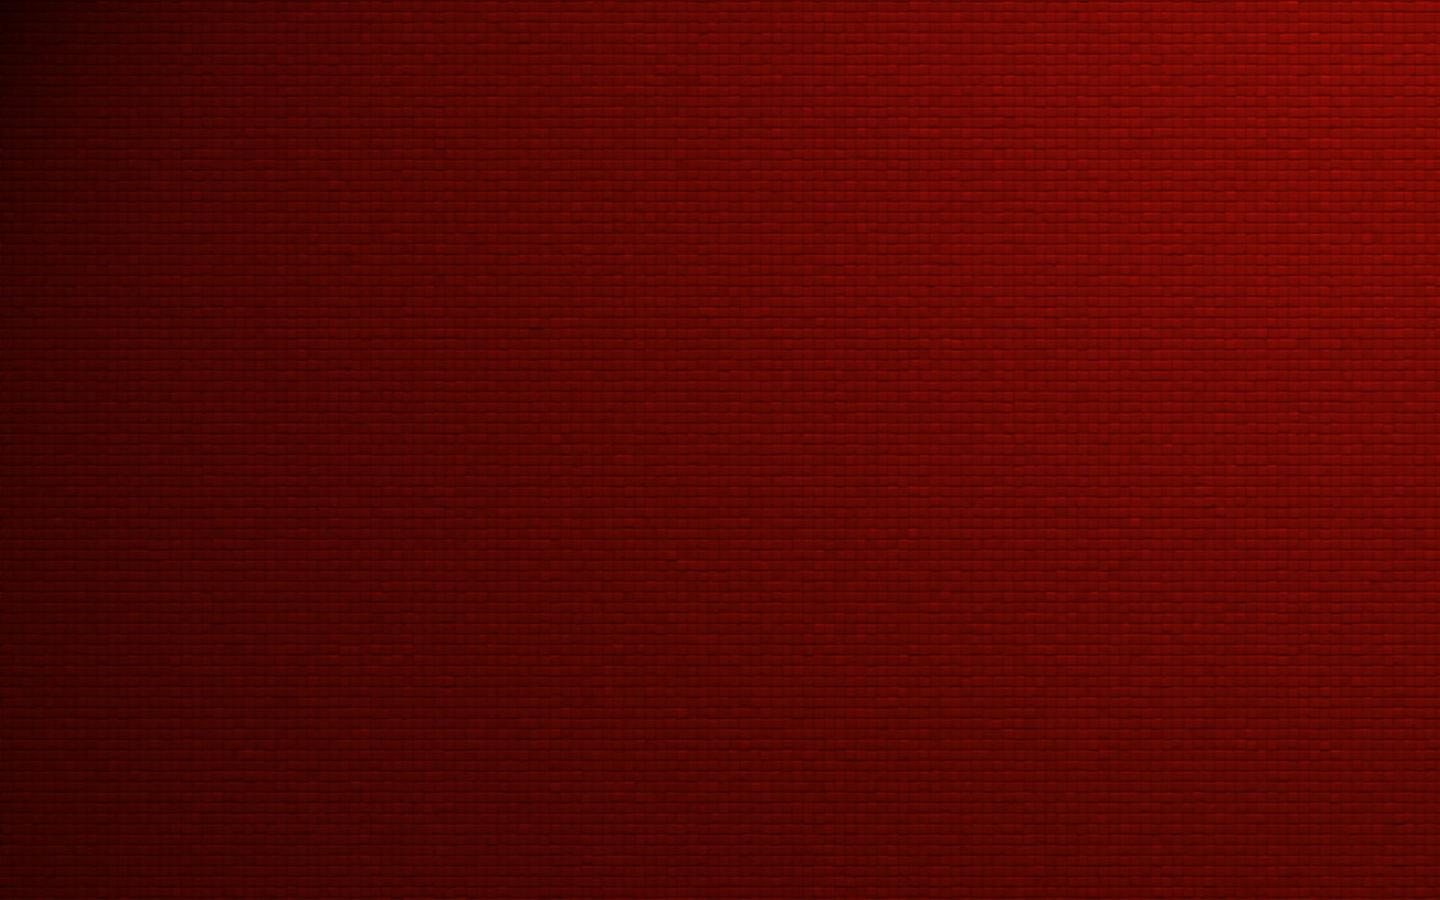 Download Wallpaper High Resolution Red - Red%2BWallpaper-778419  Graphic_436878.jpg